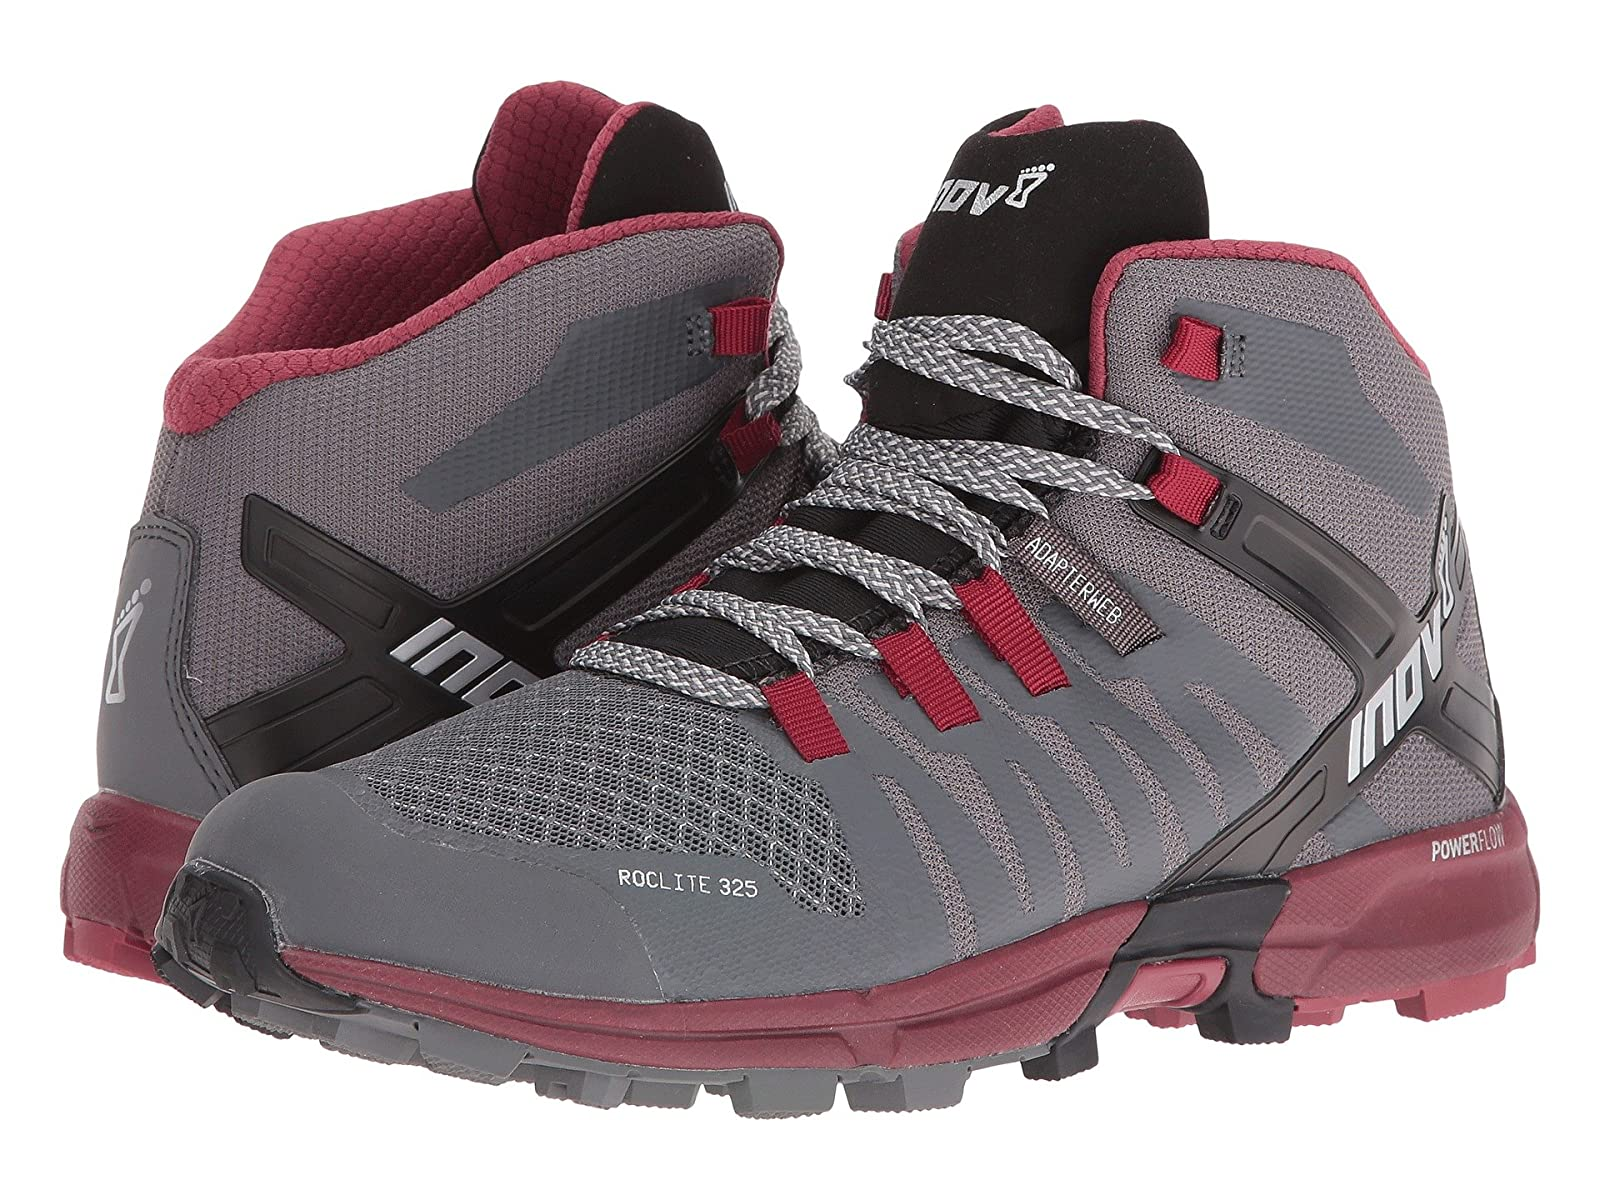 inov-8 Roclite 325Cheap and distinctive eye-catching shoes